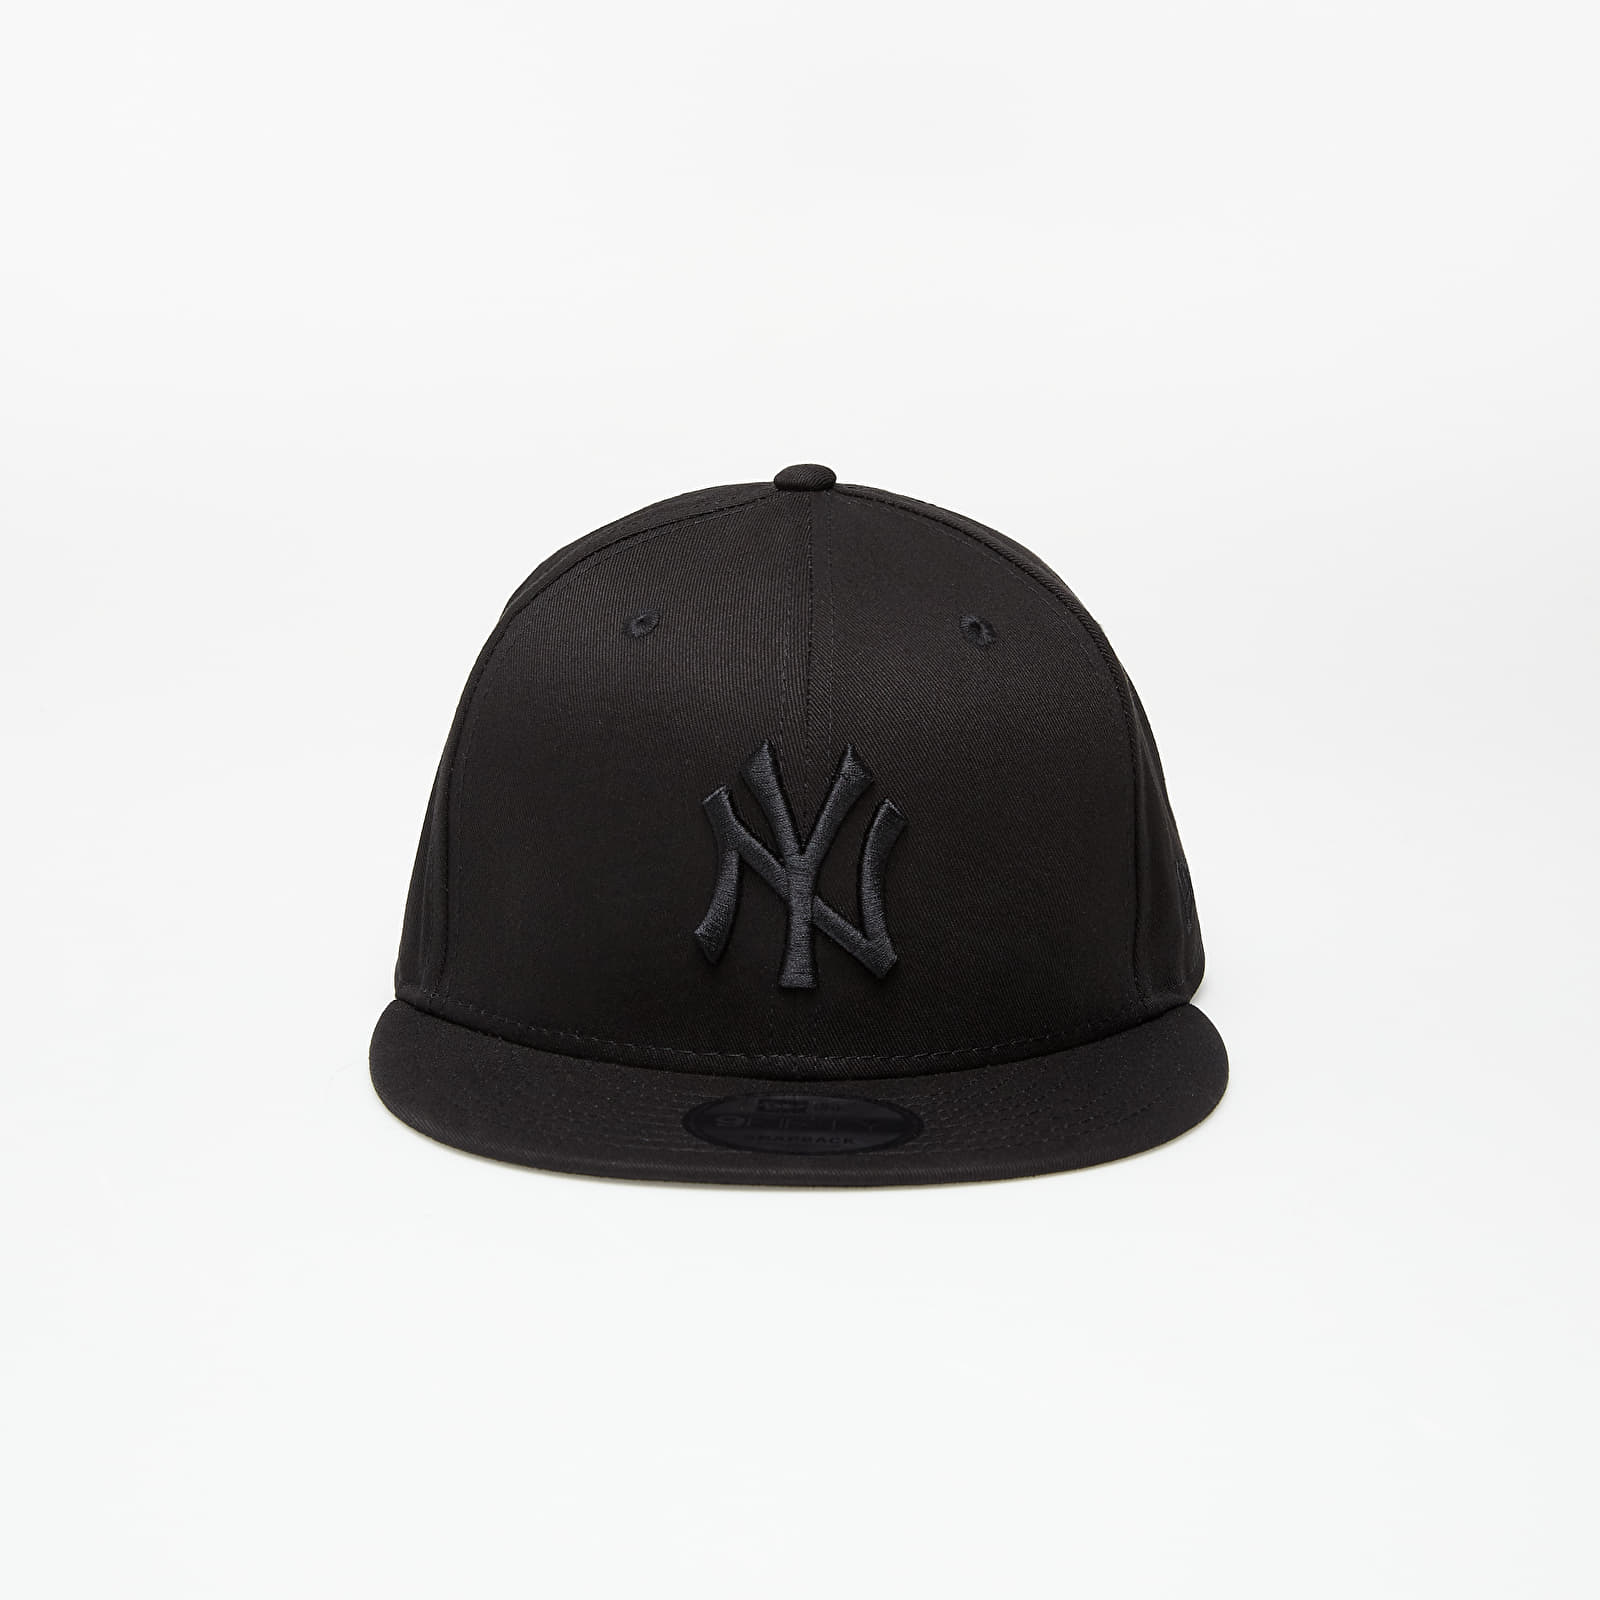 Caps New Era Cap 9Fifty Mlb New York Yankees Black Black